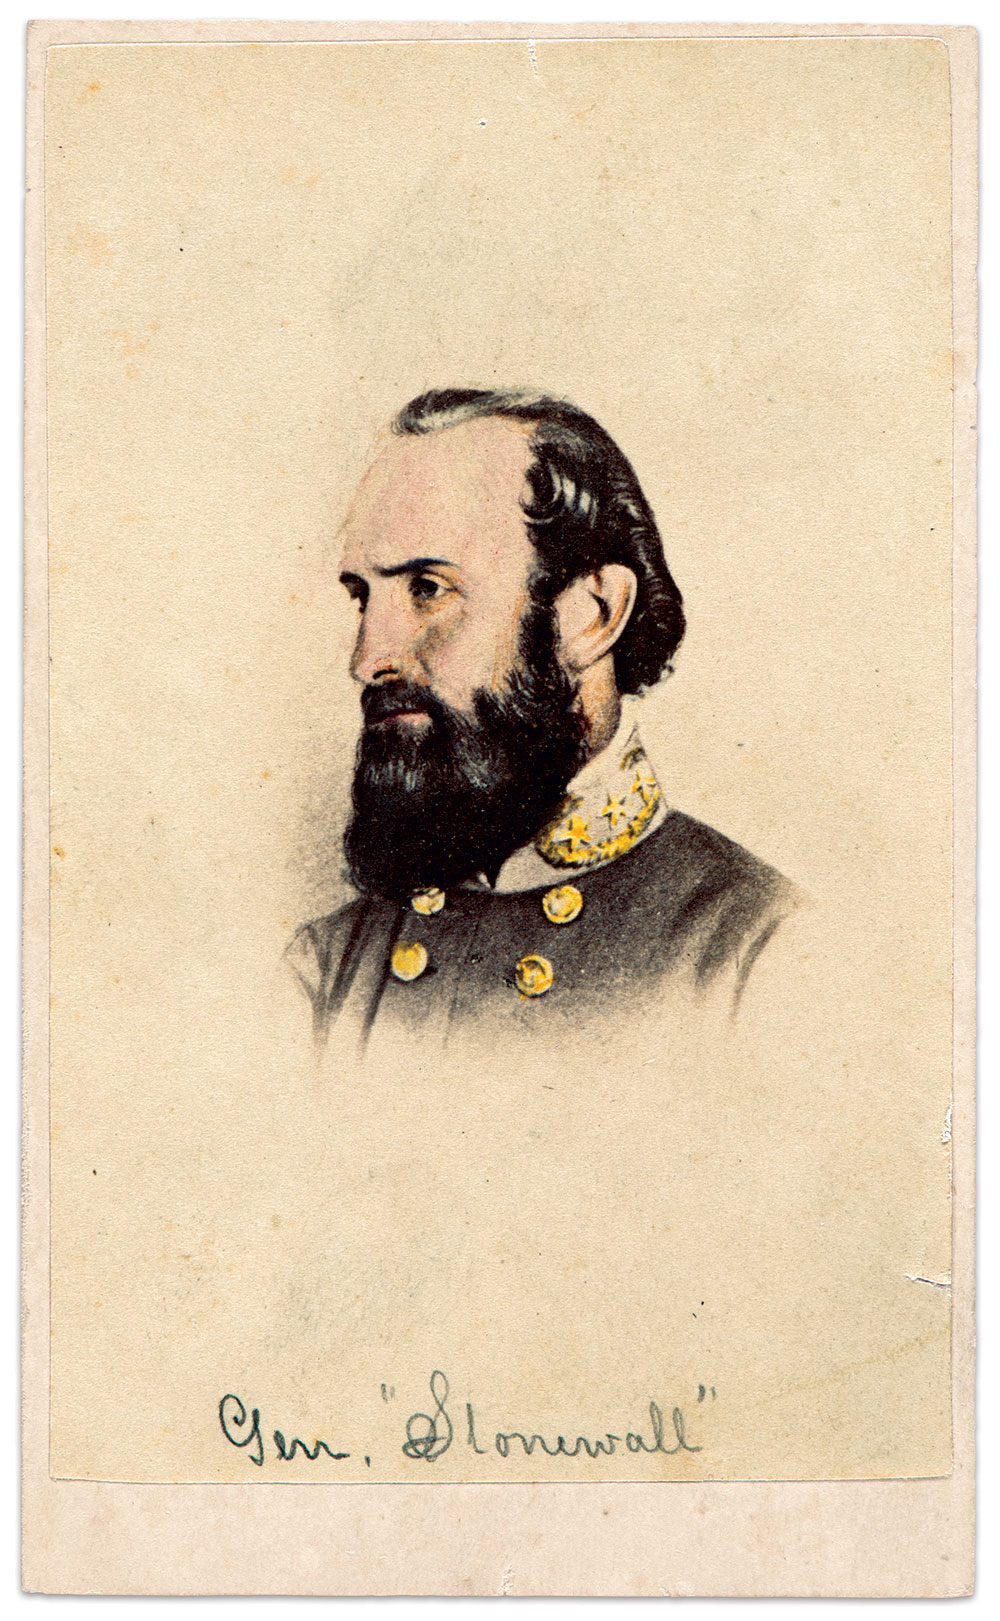 """Tinted portrait of Gen. Thomas J. """"Stonewall"""" Jackson. Gault made this print from the well-known portrait taken in Virginia on April 26, 1863, a week before Jackson suffered a wound at the Battle of Chancellorsville that ultimately cost him his life. Courtesy of the Confederate Memorial Literary Society (CMLS) Image Collection, Virginia Museum of History & Culture."""